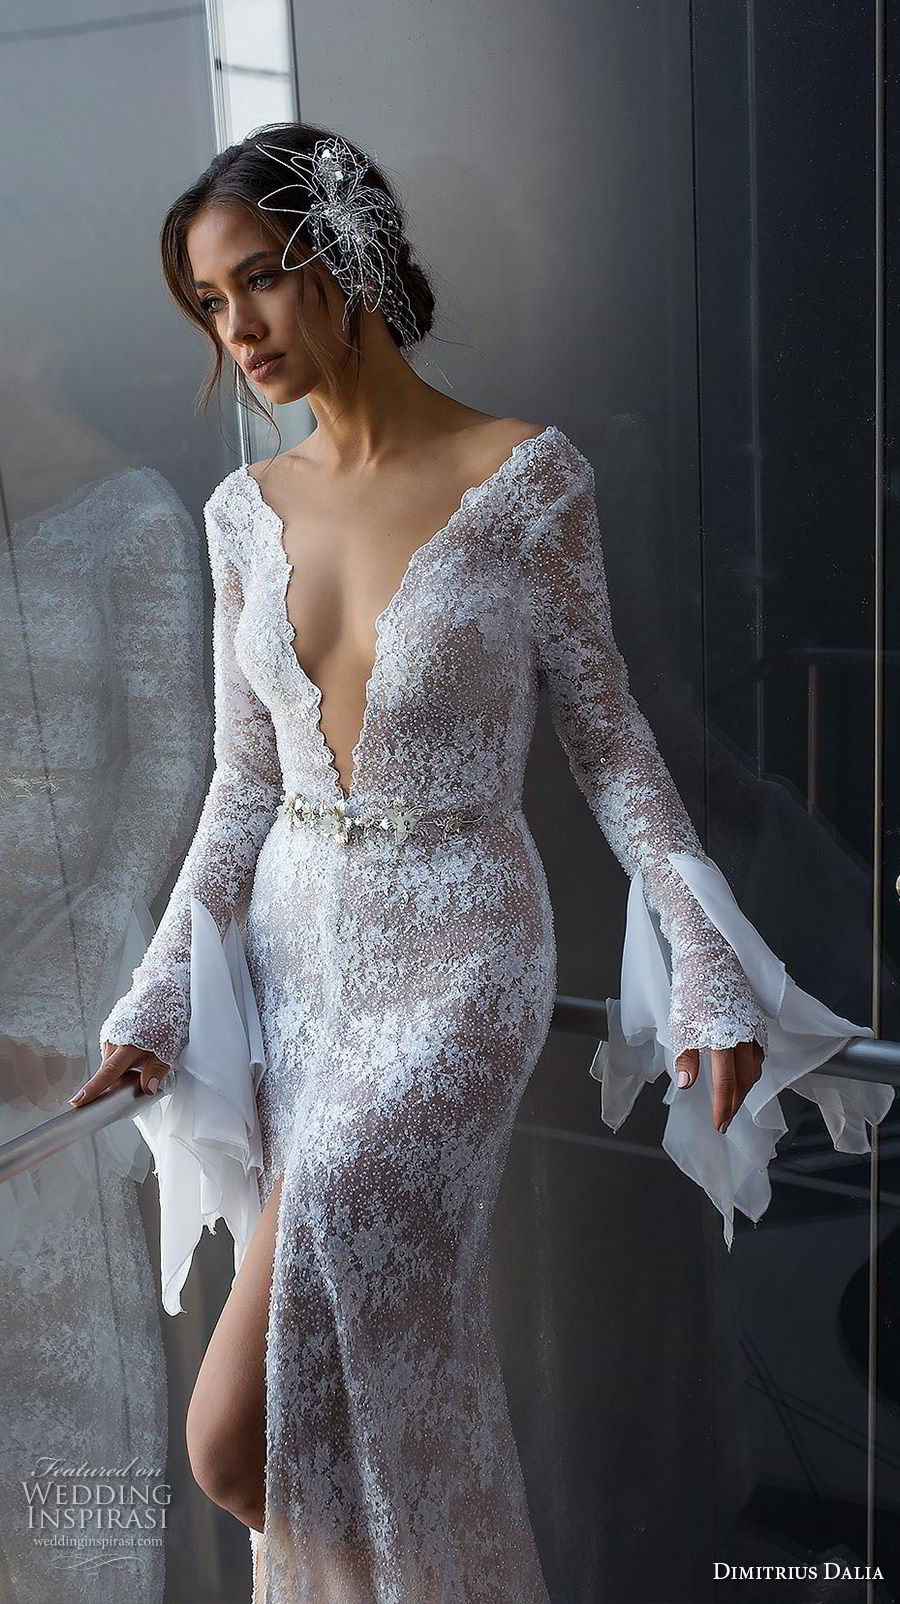 dimitrius dalia 2018 royal long bell sleeves deep v neck full embellishment slit skirt sexy elegant sheath wedding dress sweep train (5) zv mv